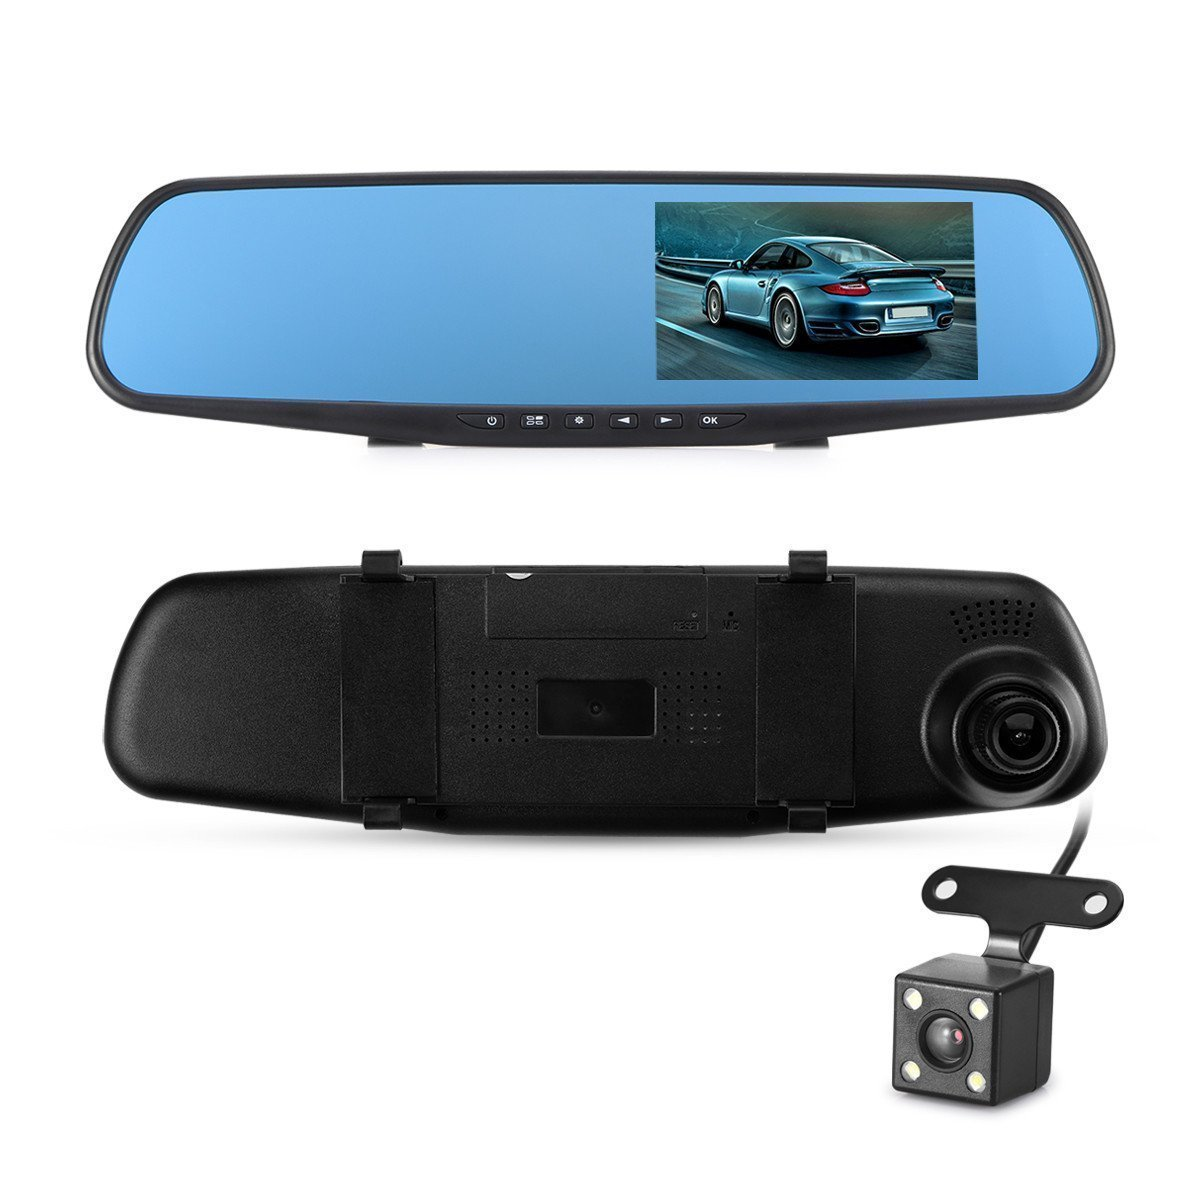 "4.3"" Dual Lens 1080P FHD Dash Camera Car Rear View Mirror DVR Video Recorder Camcorder Support Motion Detection/G-sensor/Loop Video/120 Degree Wide Angle with Rear Camera - ZATAKI"